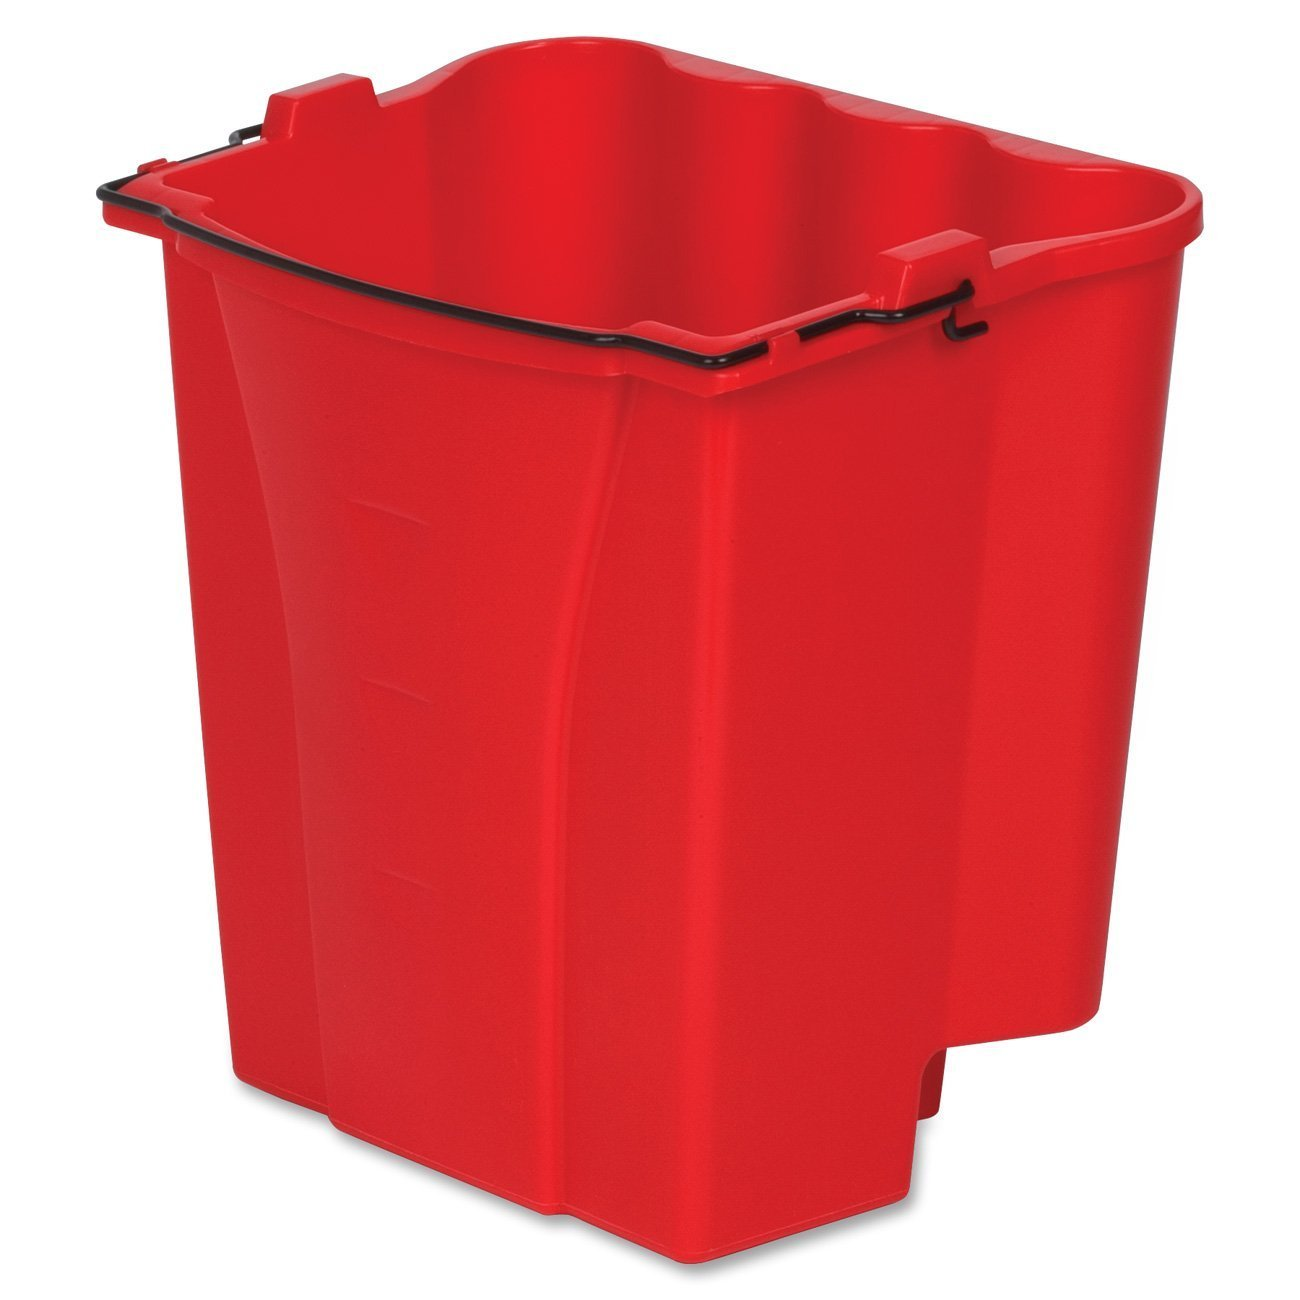 Rubbermaid Commercial Dirty Water Bucket for WaveBrake Mop Buckets, 18-Quart, Red, FG9C7400RED by Rubbermaid Commercial Products